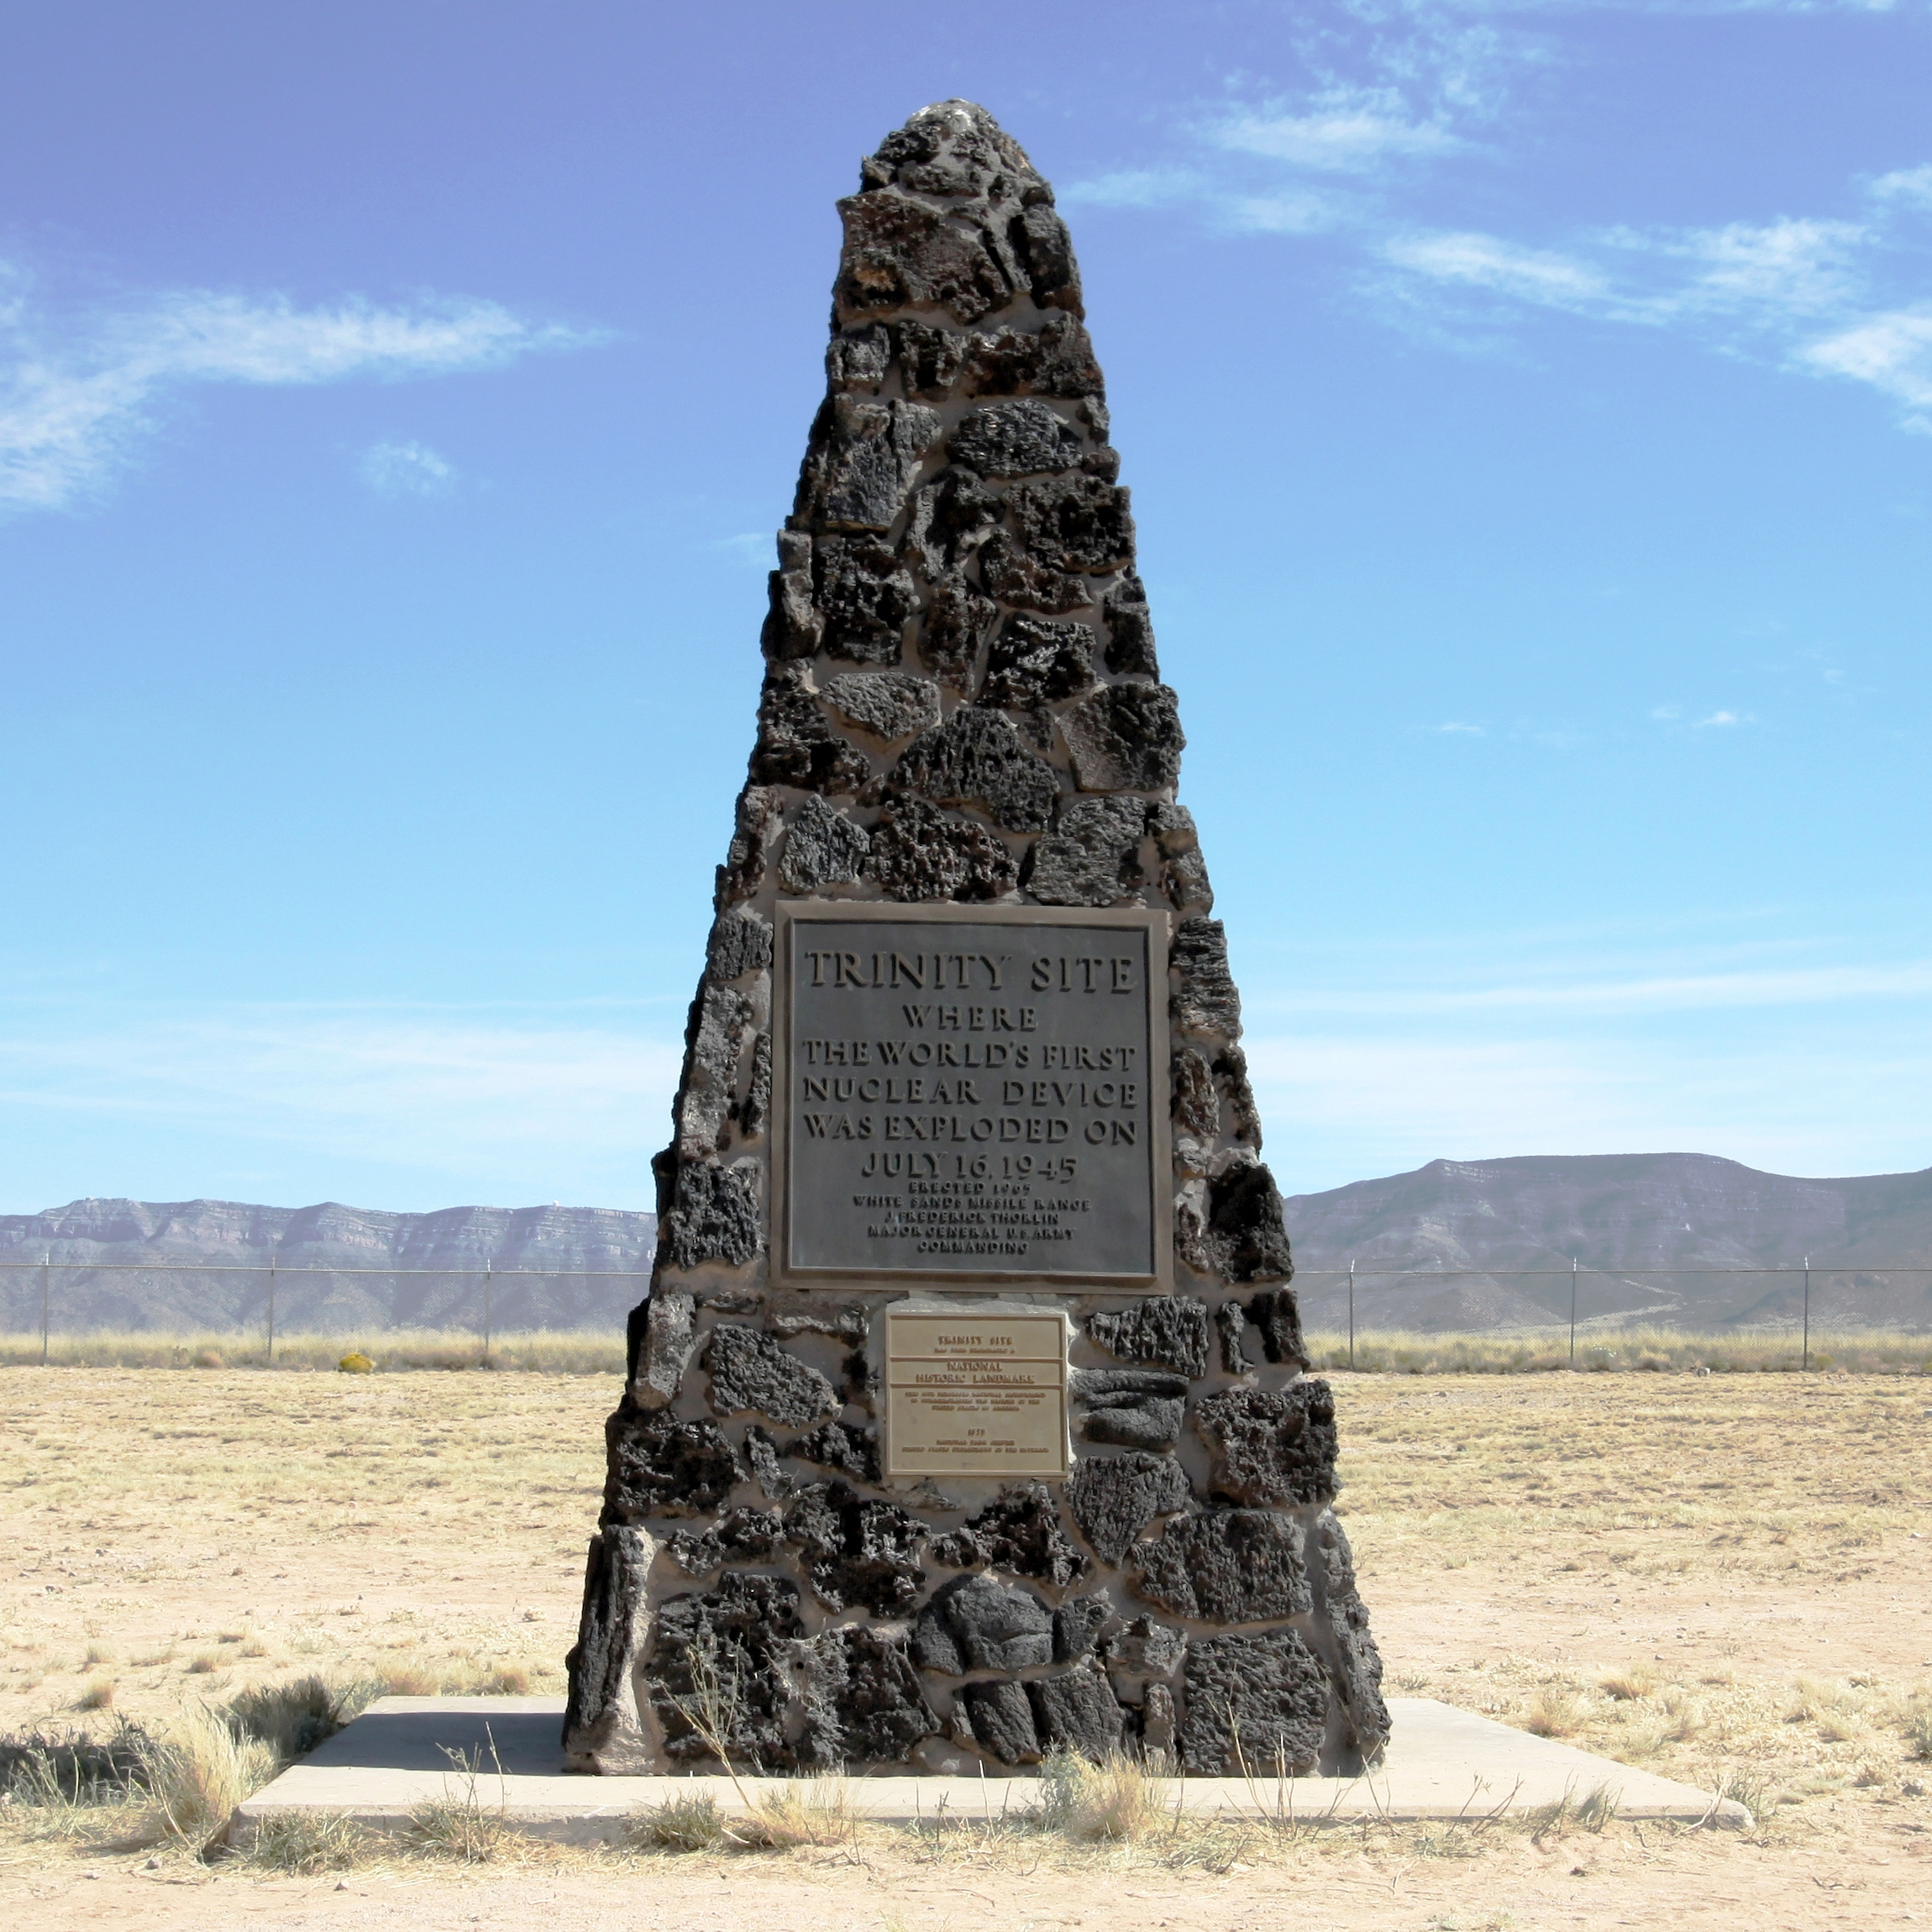 https://upload.wikimedia.org/wikipedia/commons/3/35/Trinity_Site_Obelisk_National_Historic_Landmark.jpg